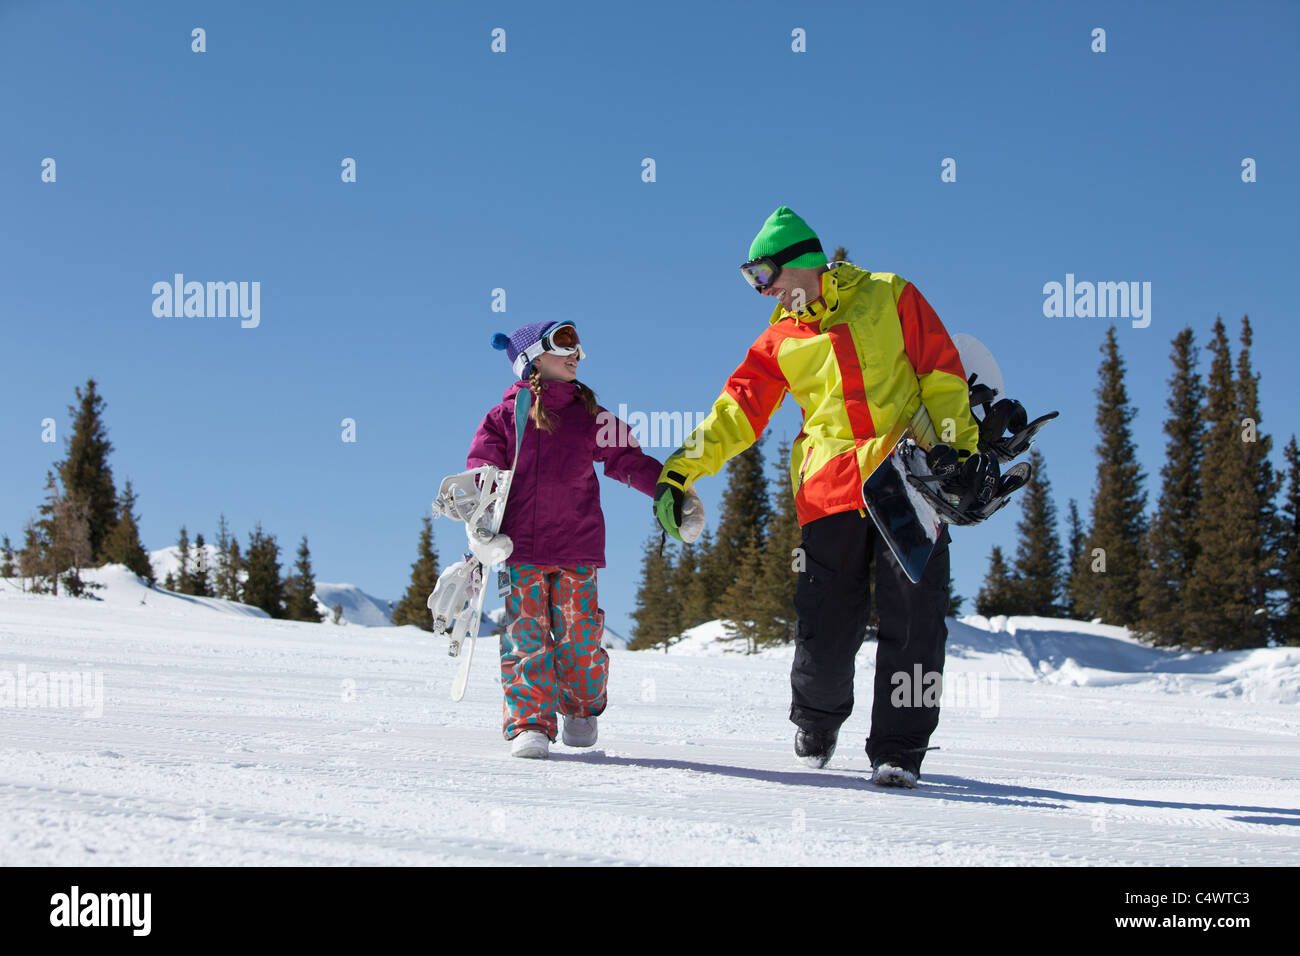 USA, Colorado, Telluride, Father and daughter (10-11) walking with snowboards in winter scenery - Stock Image